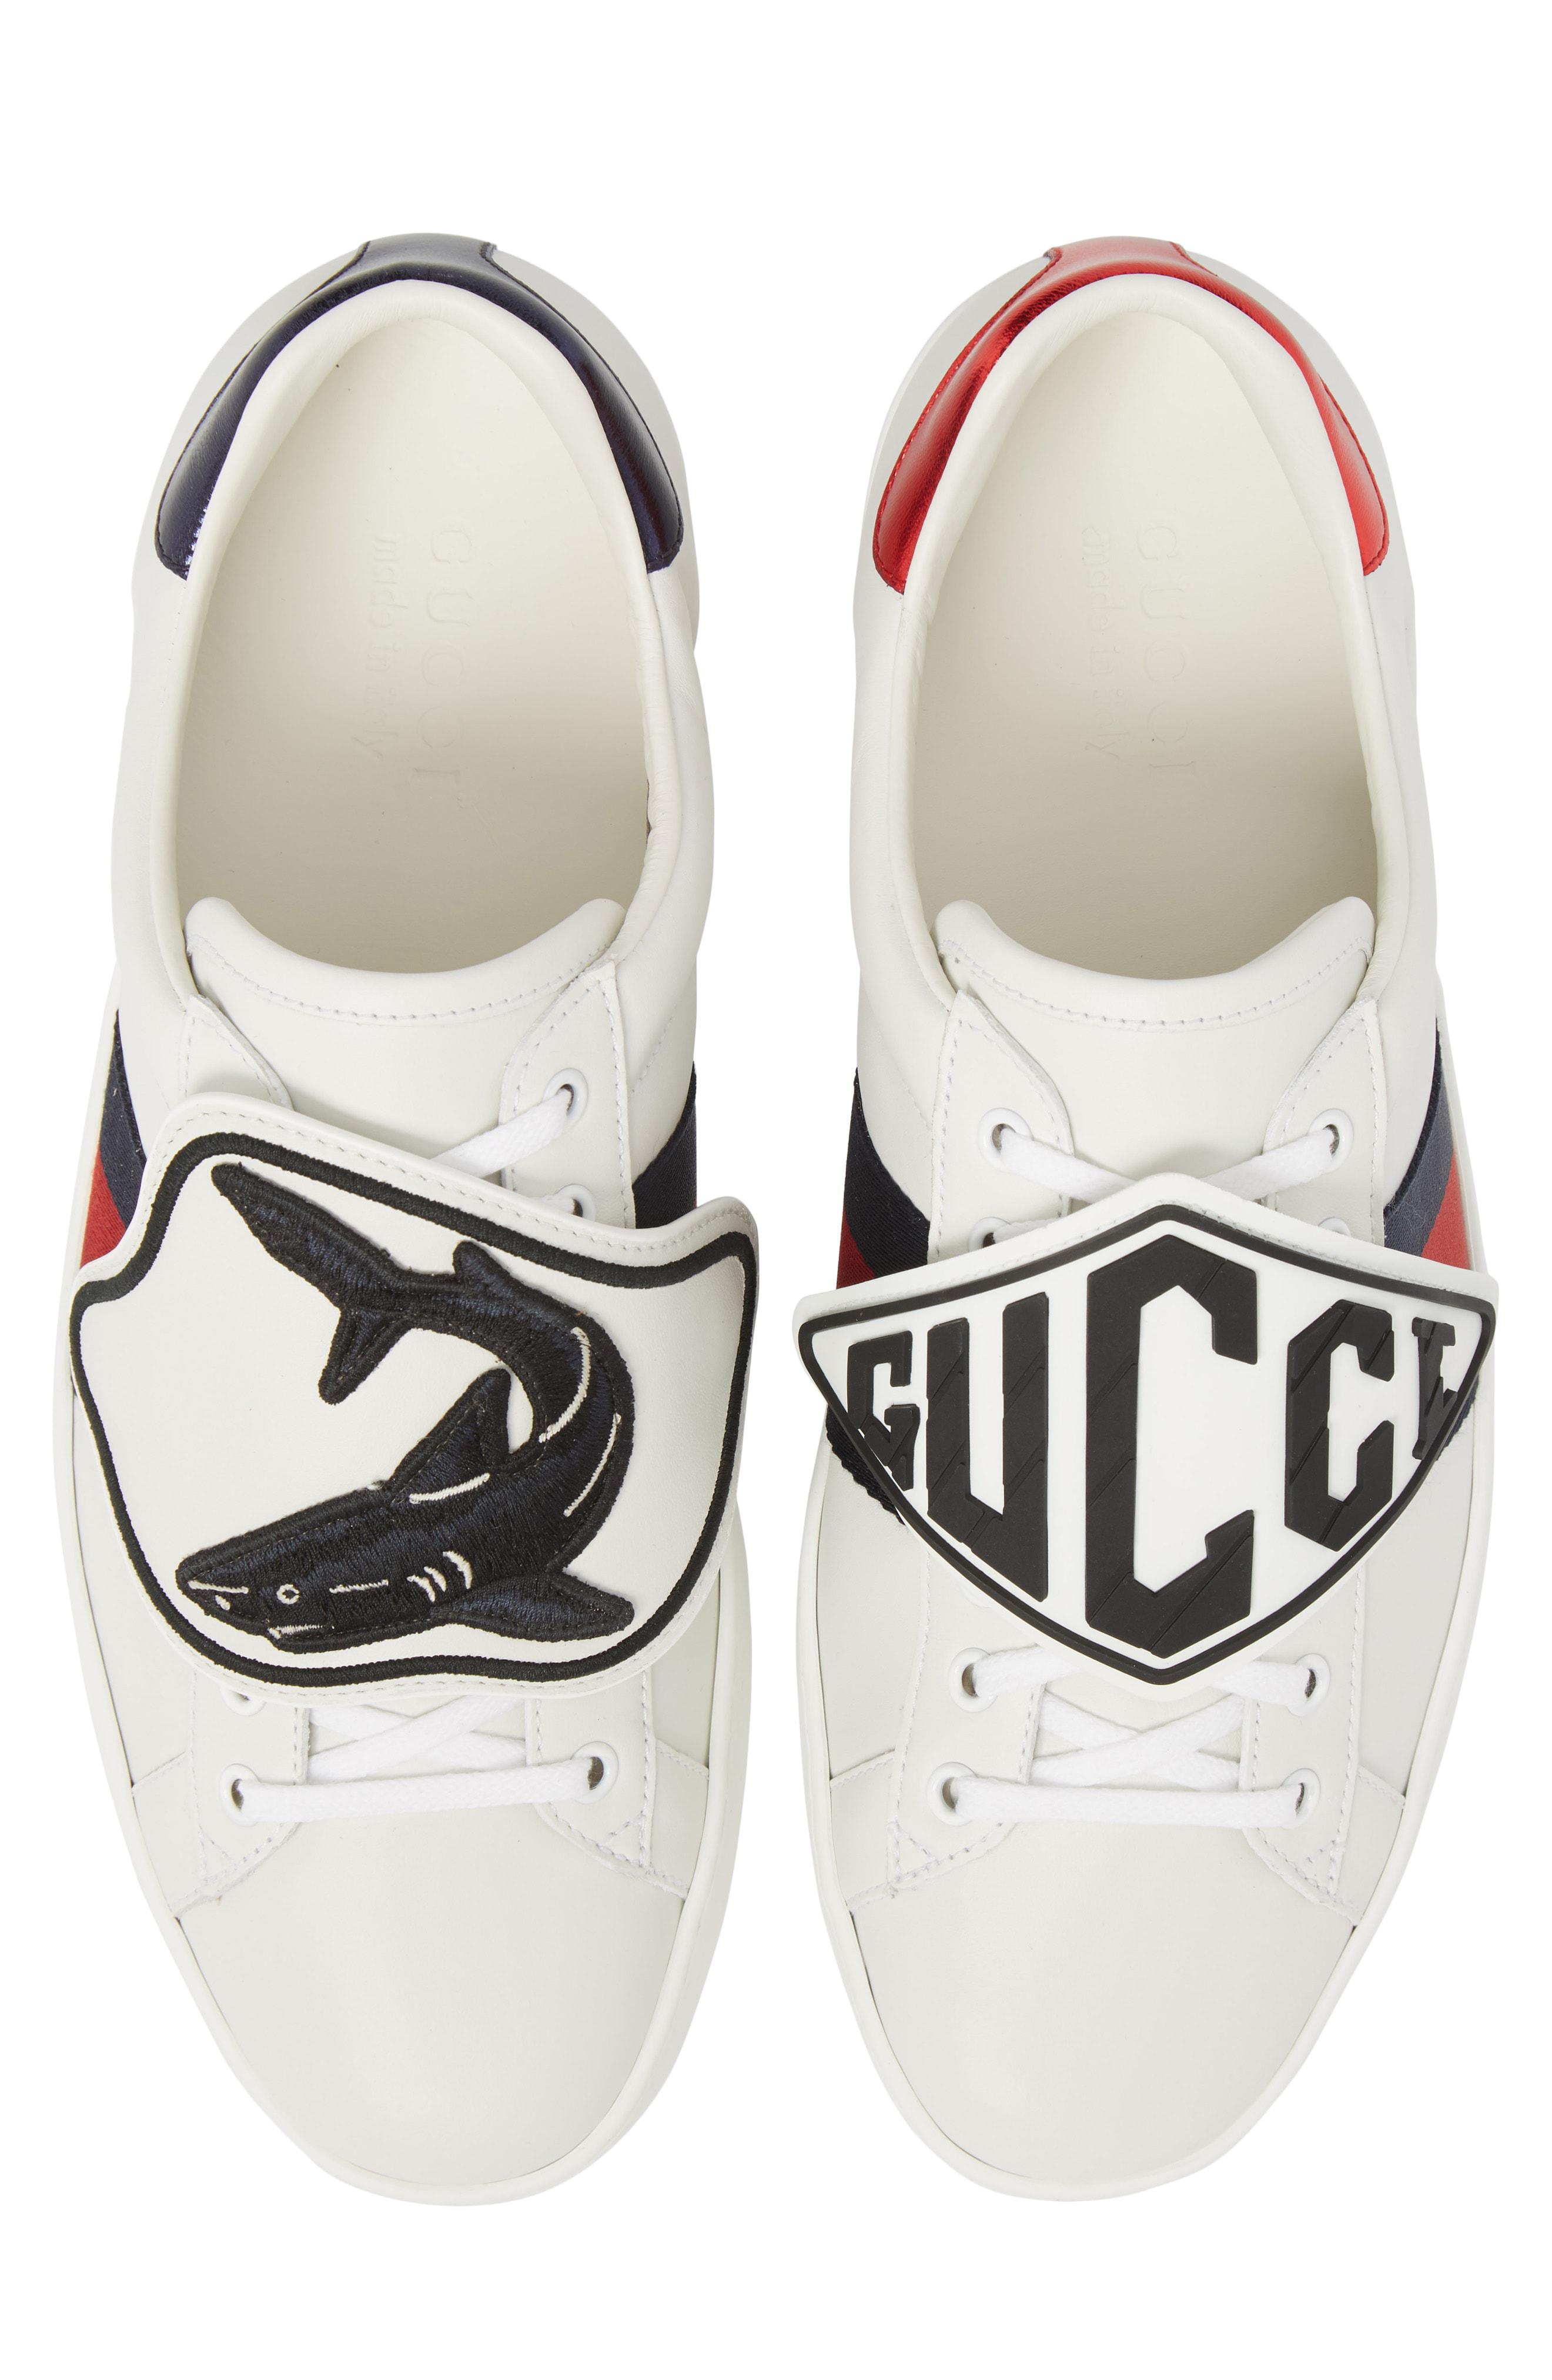 Gucci Leather New Ace Patch Sneaker in